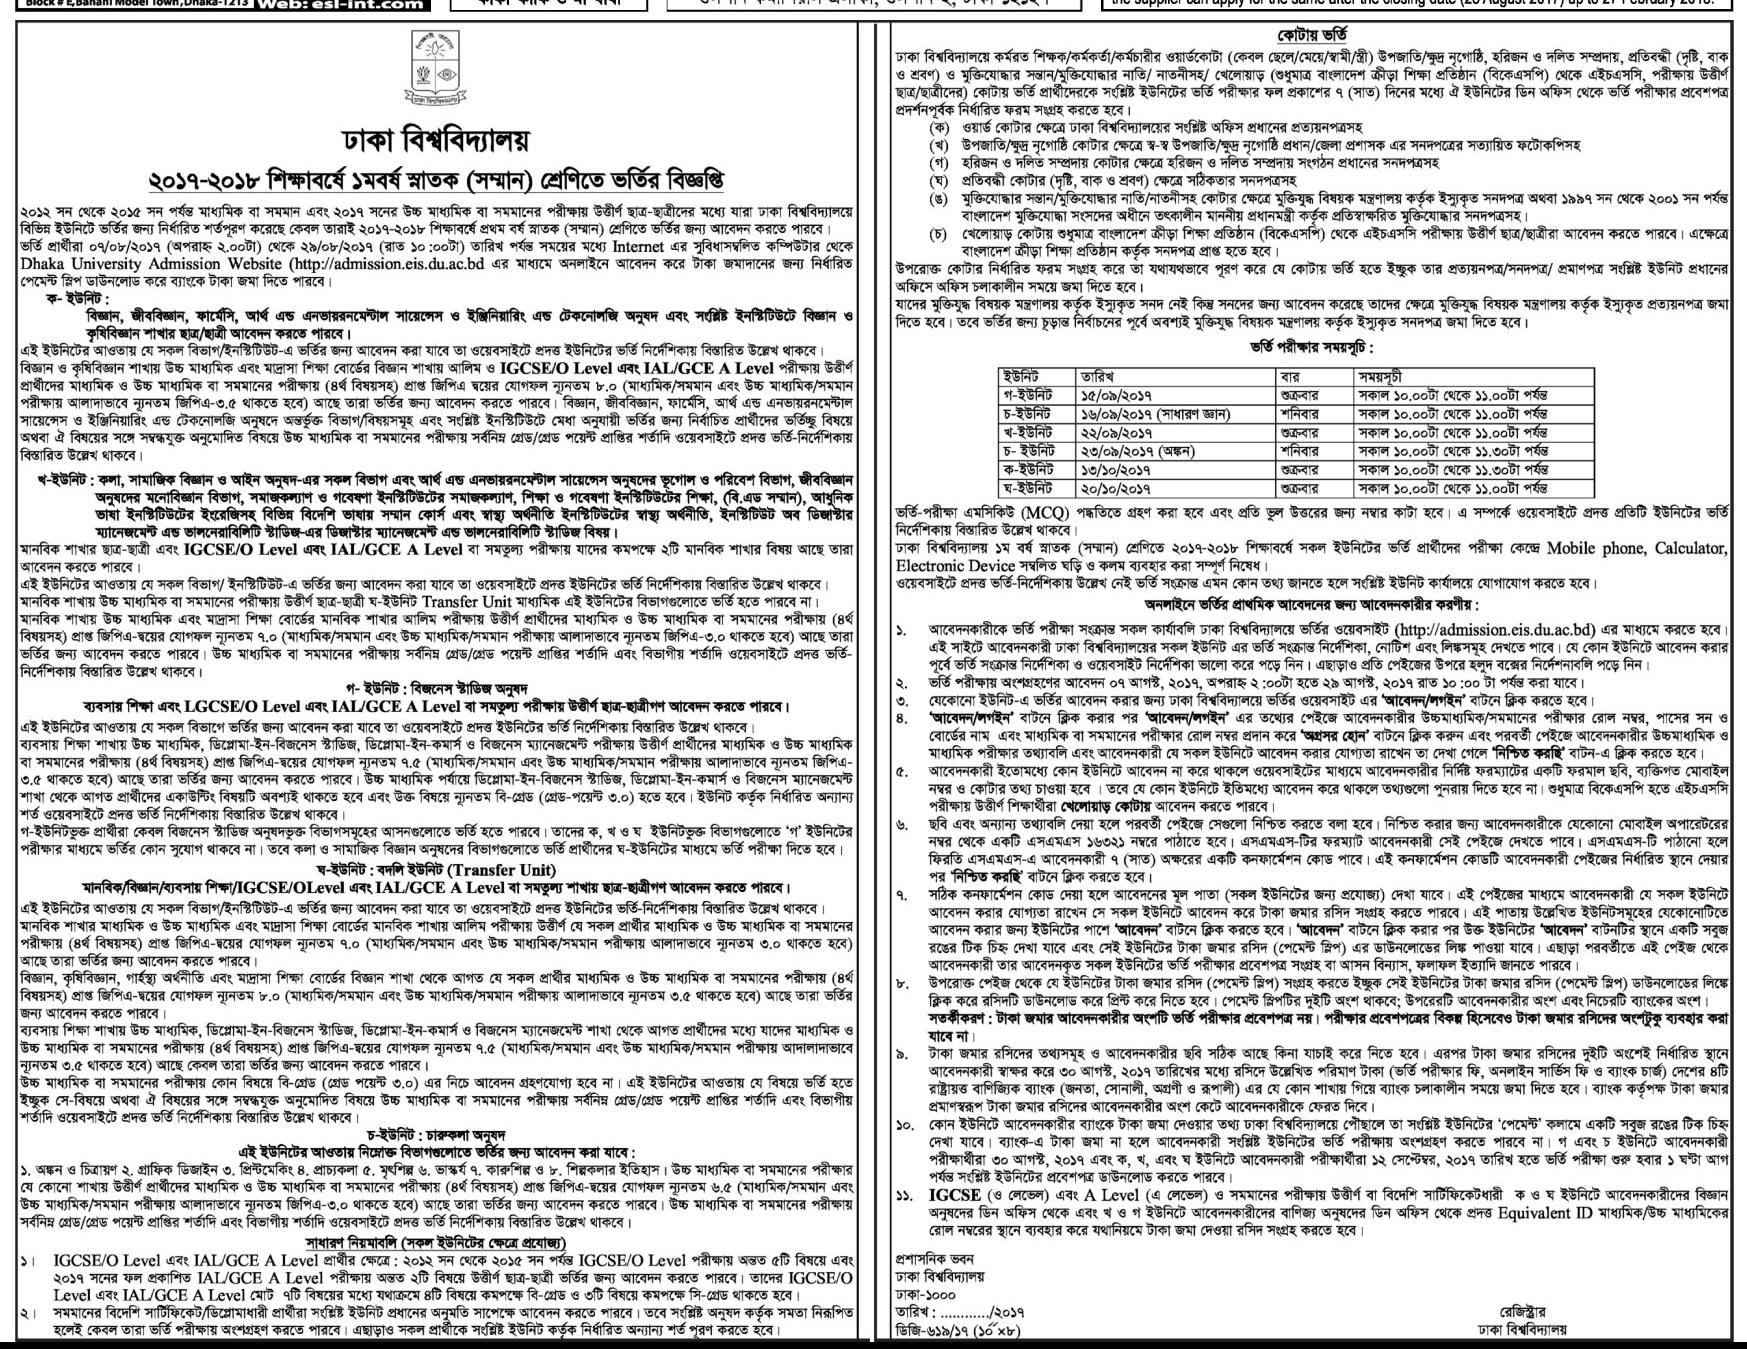 DU Admission Notice 2017-18 | Application www admission.eis.du.ac.bd